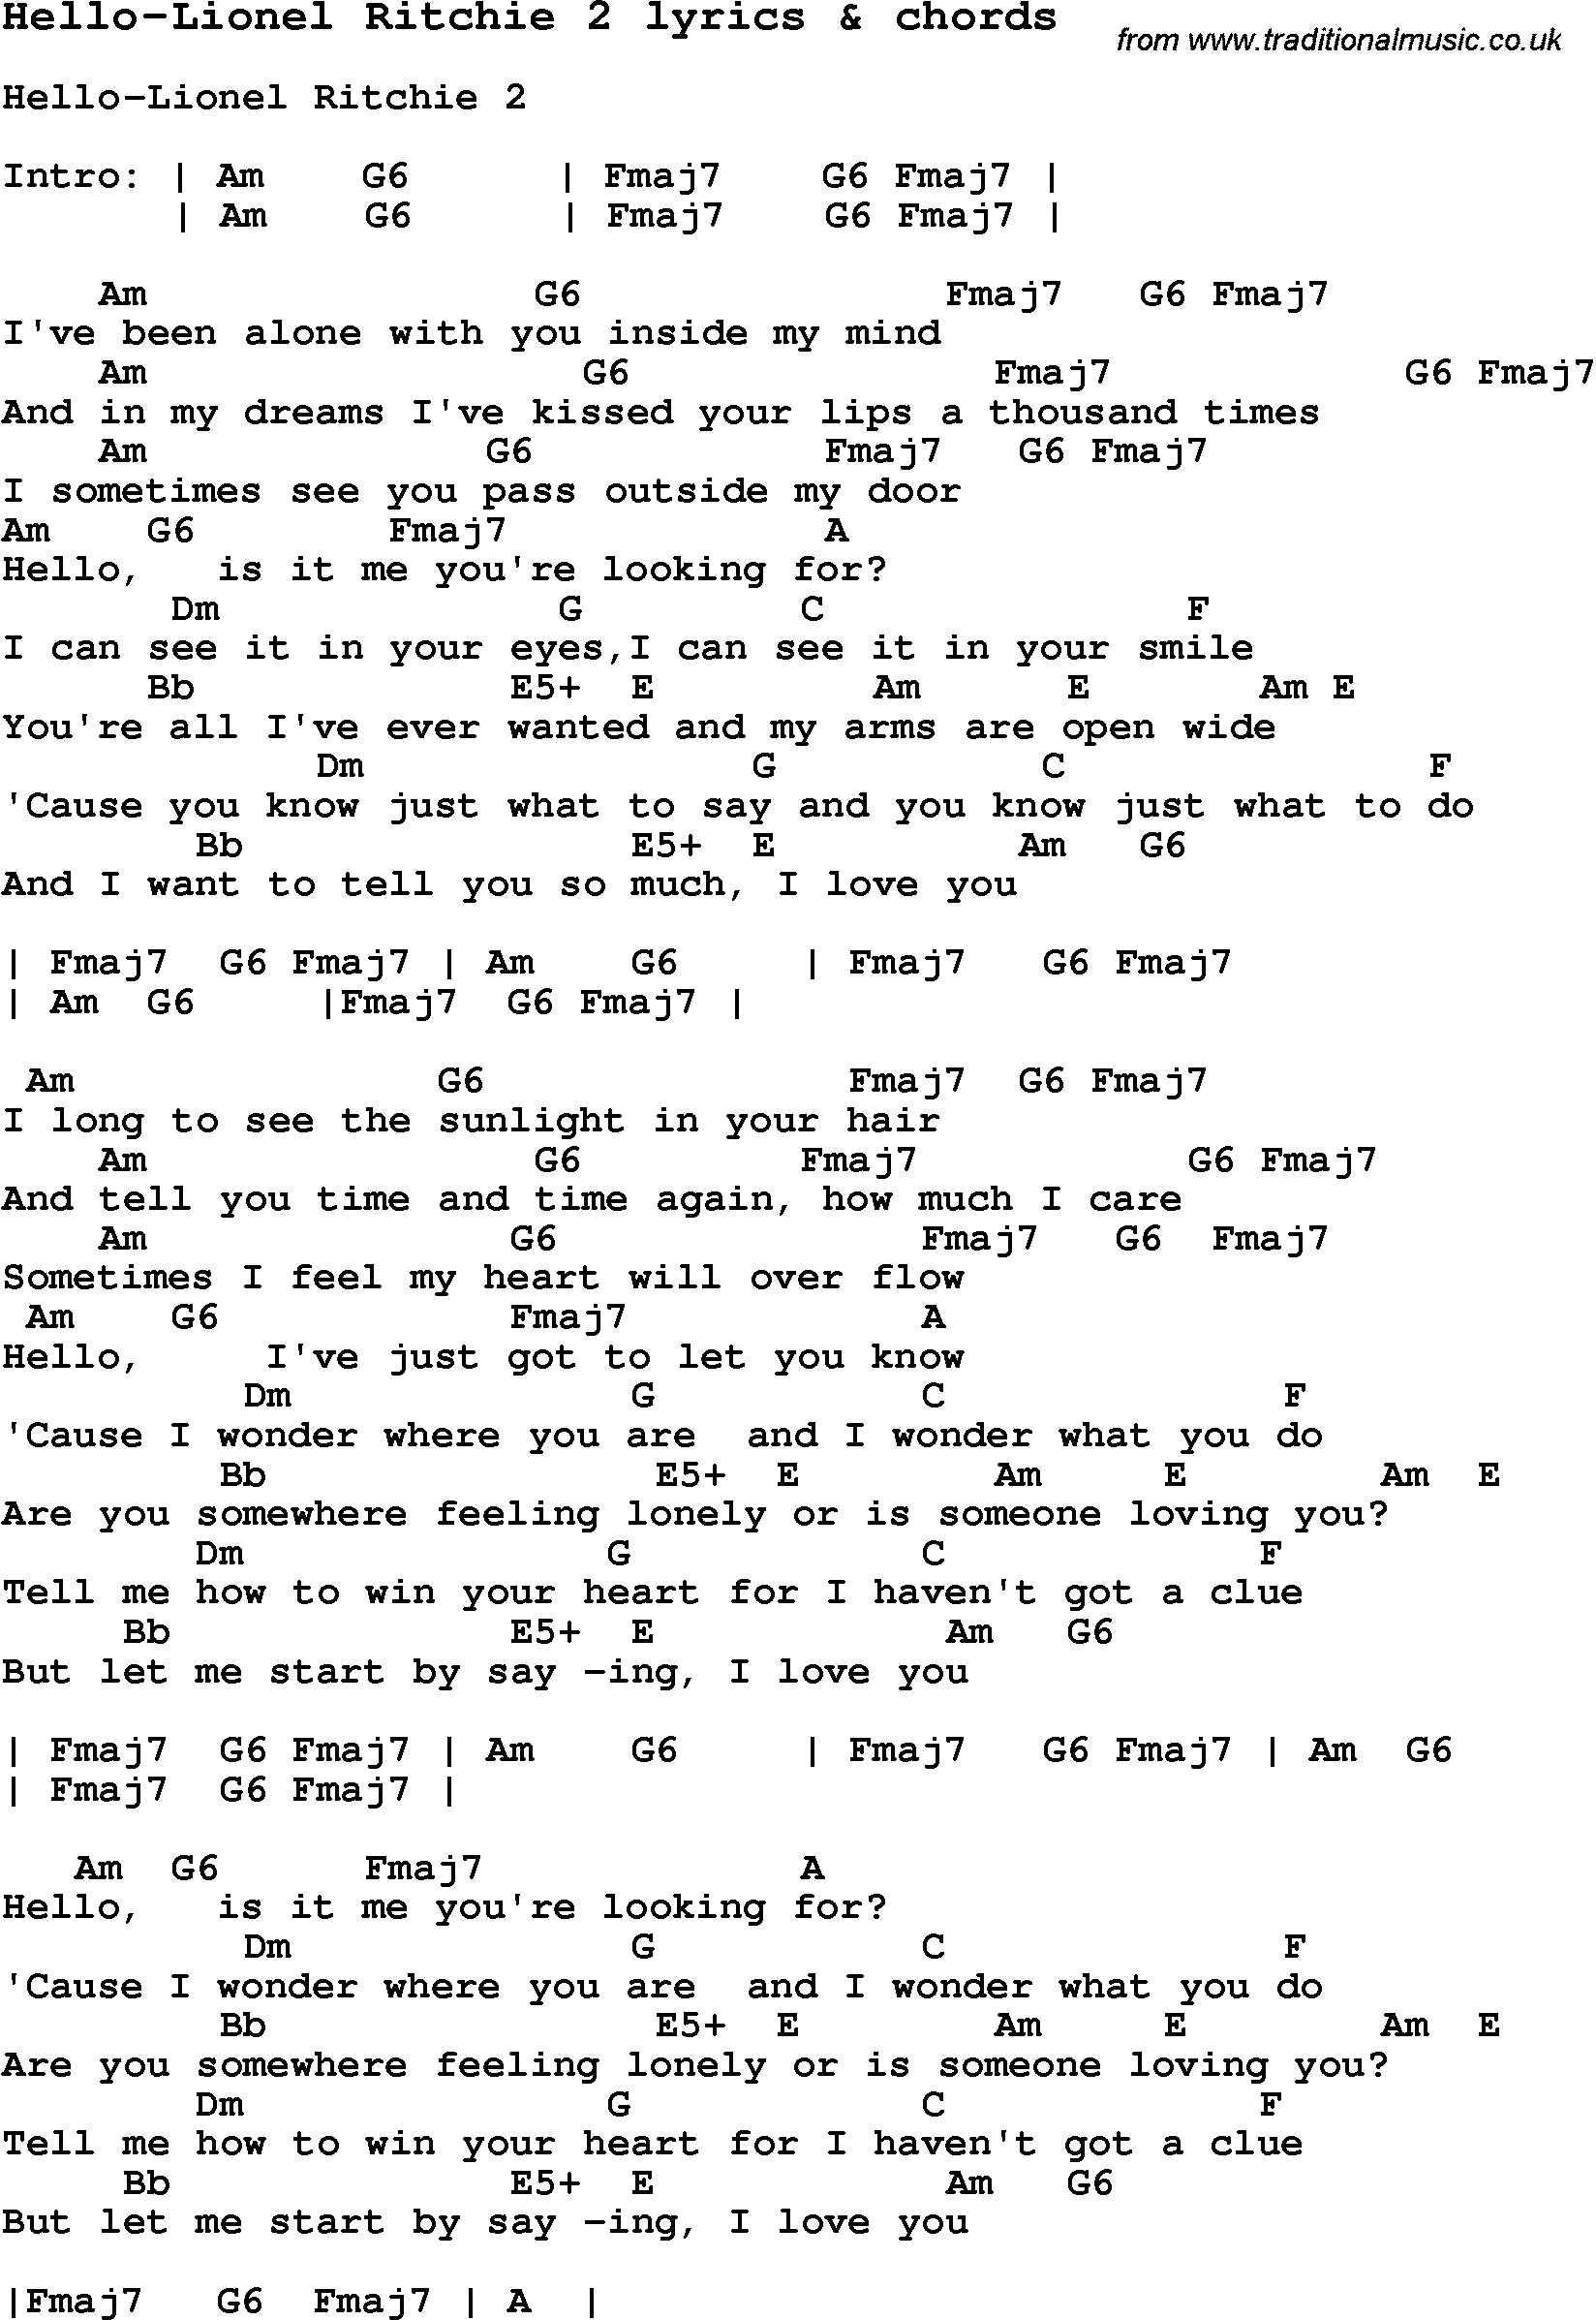 Love song lyrics forhello lionel ritchie 2 with chords love song lyrics for hello lionel ritchie 2 with chords for ukulele guitar hexwebz Choice Image